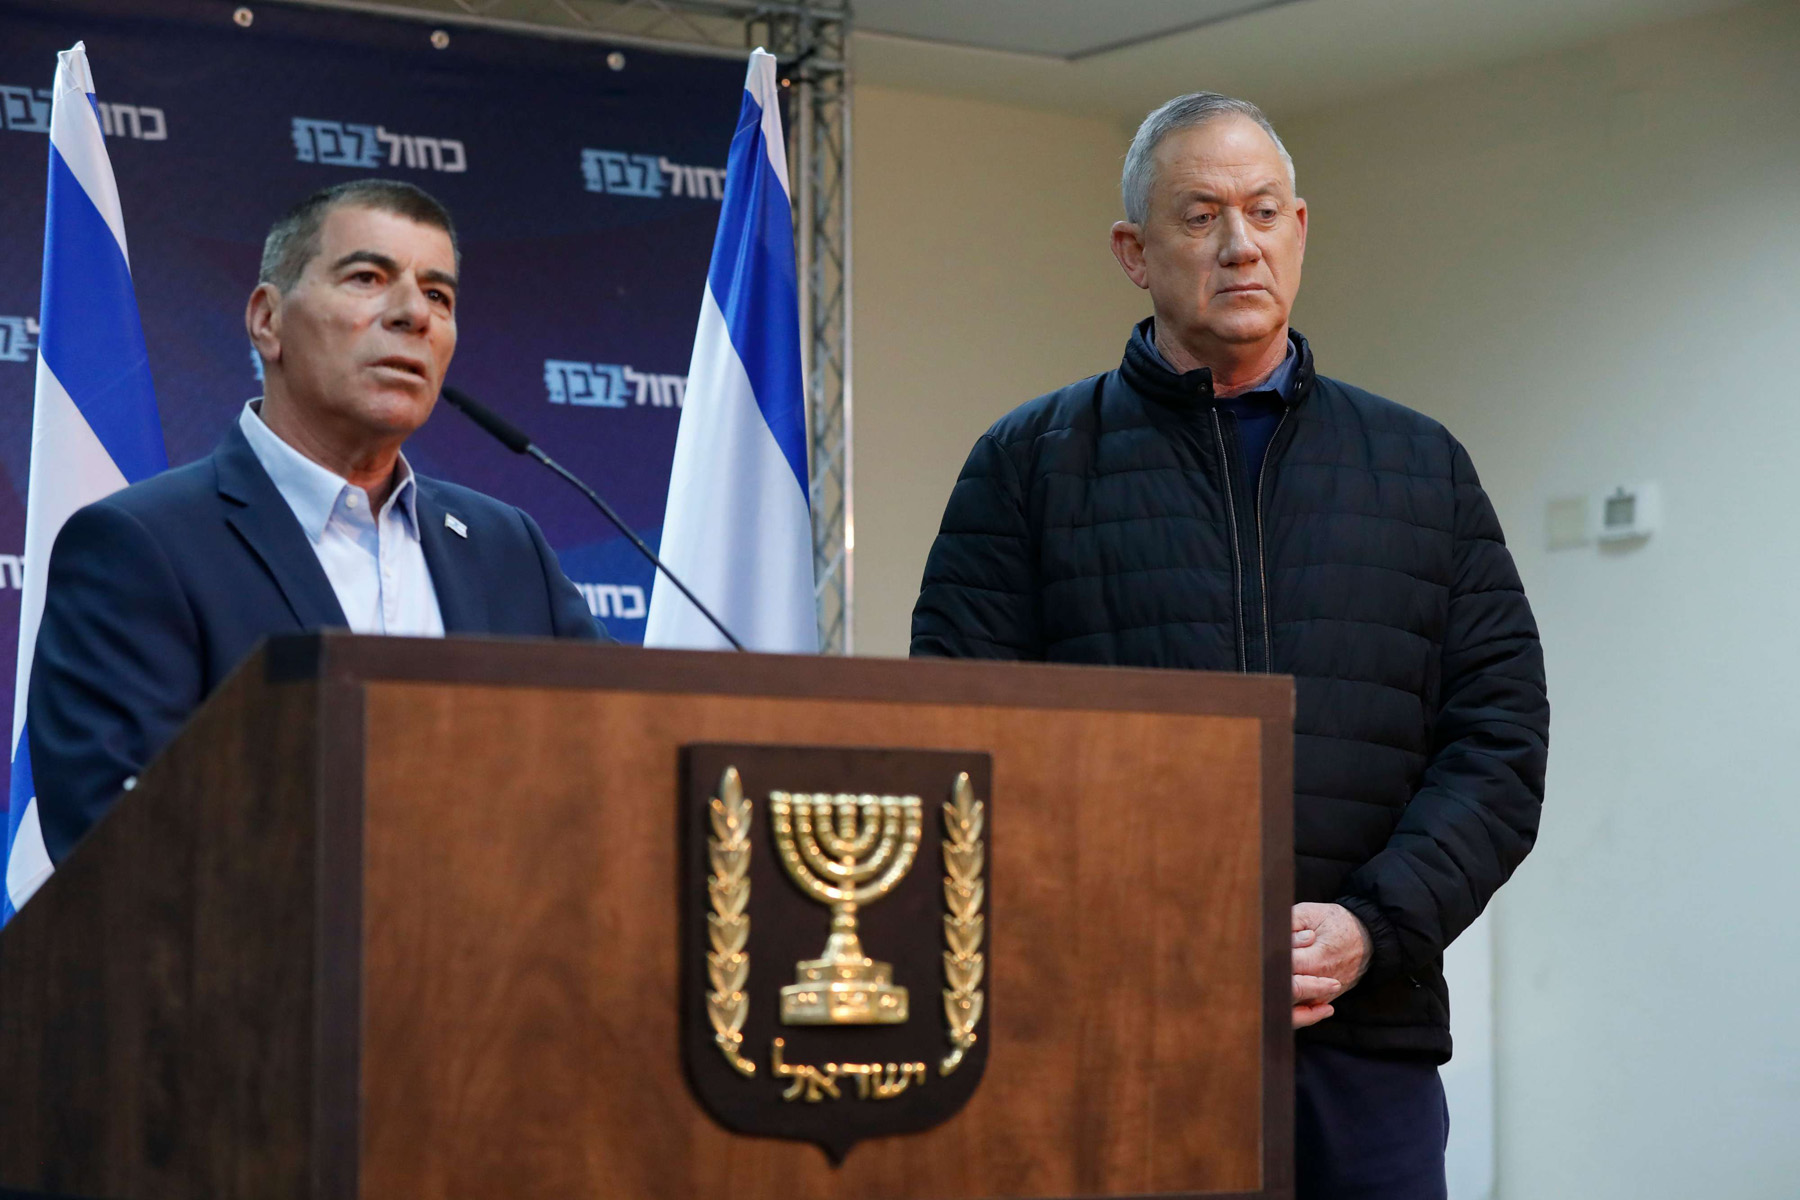 A file picture of new Defence Minister and alternate Prime Minister Benny Gantz (R) with new Foreign Minister Gabi Ashkenazi. (AFP)